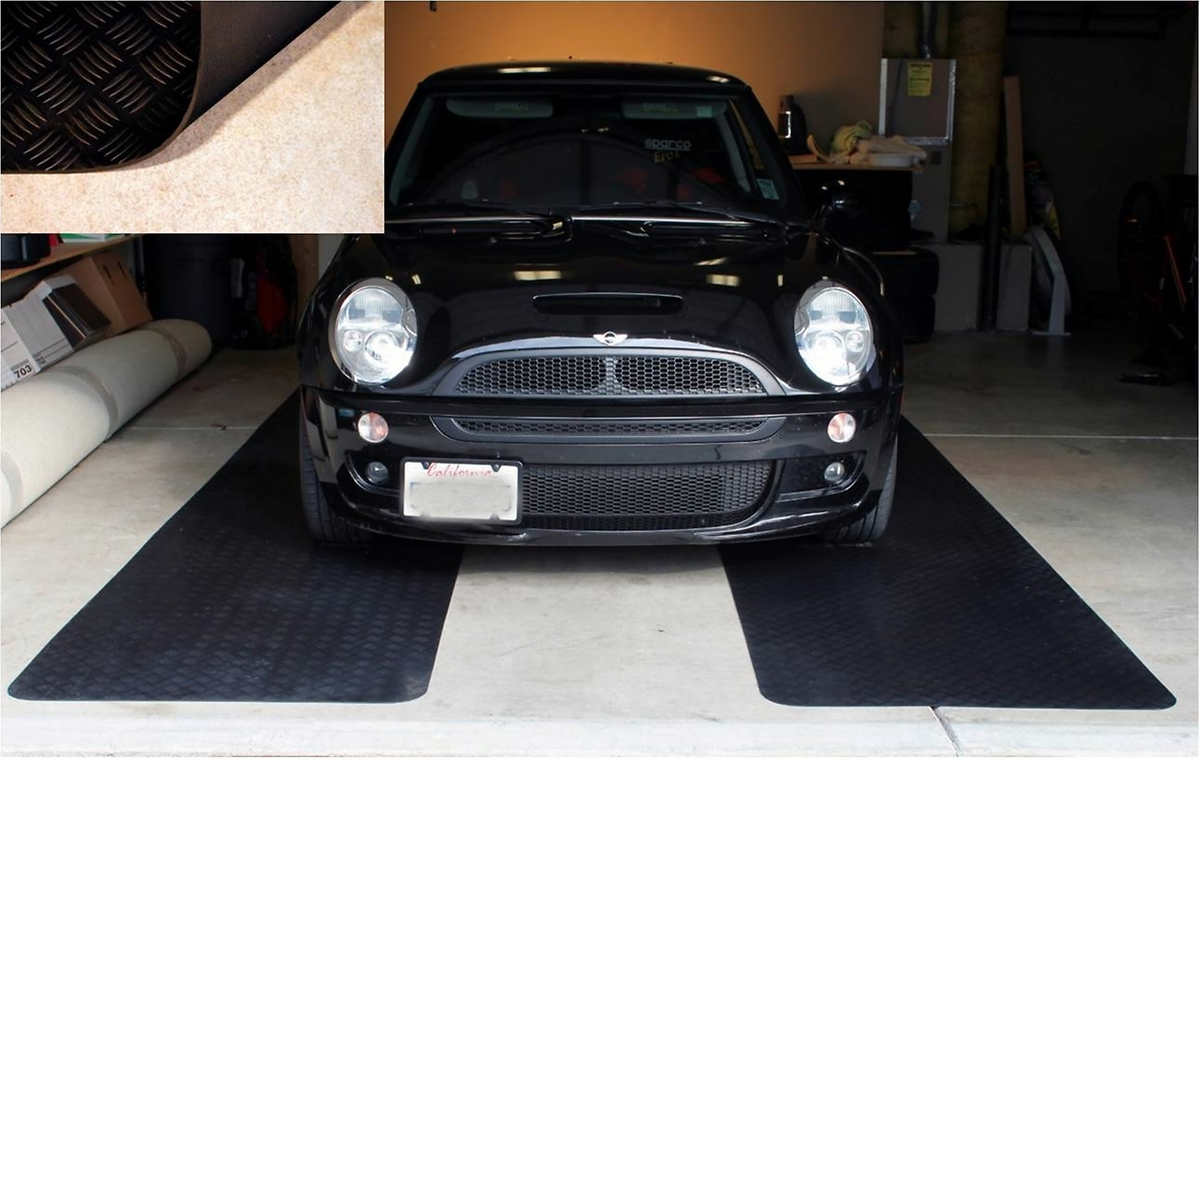 coin mat midnight g black x in w covering l a sqft rollout garage barn flooring mil pattern floor used